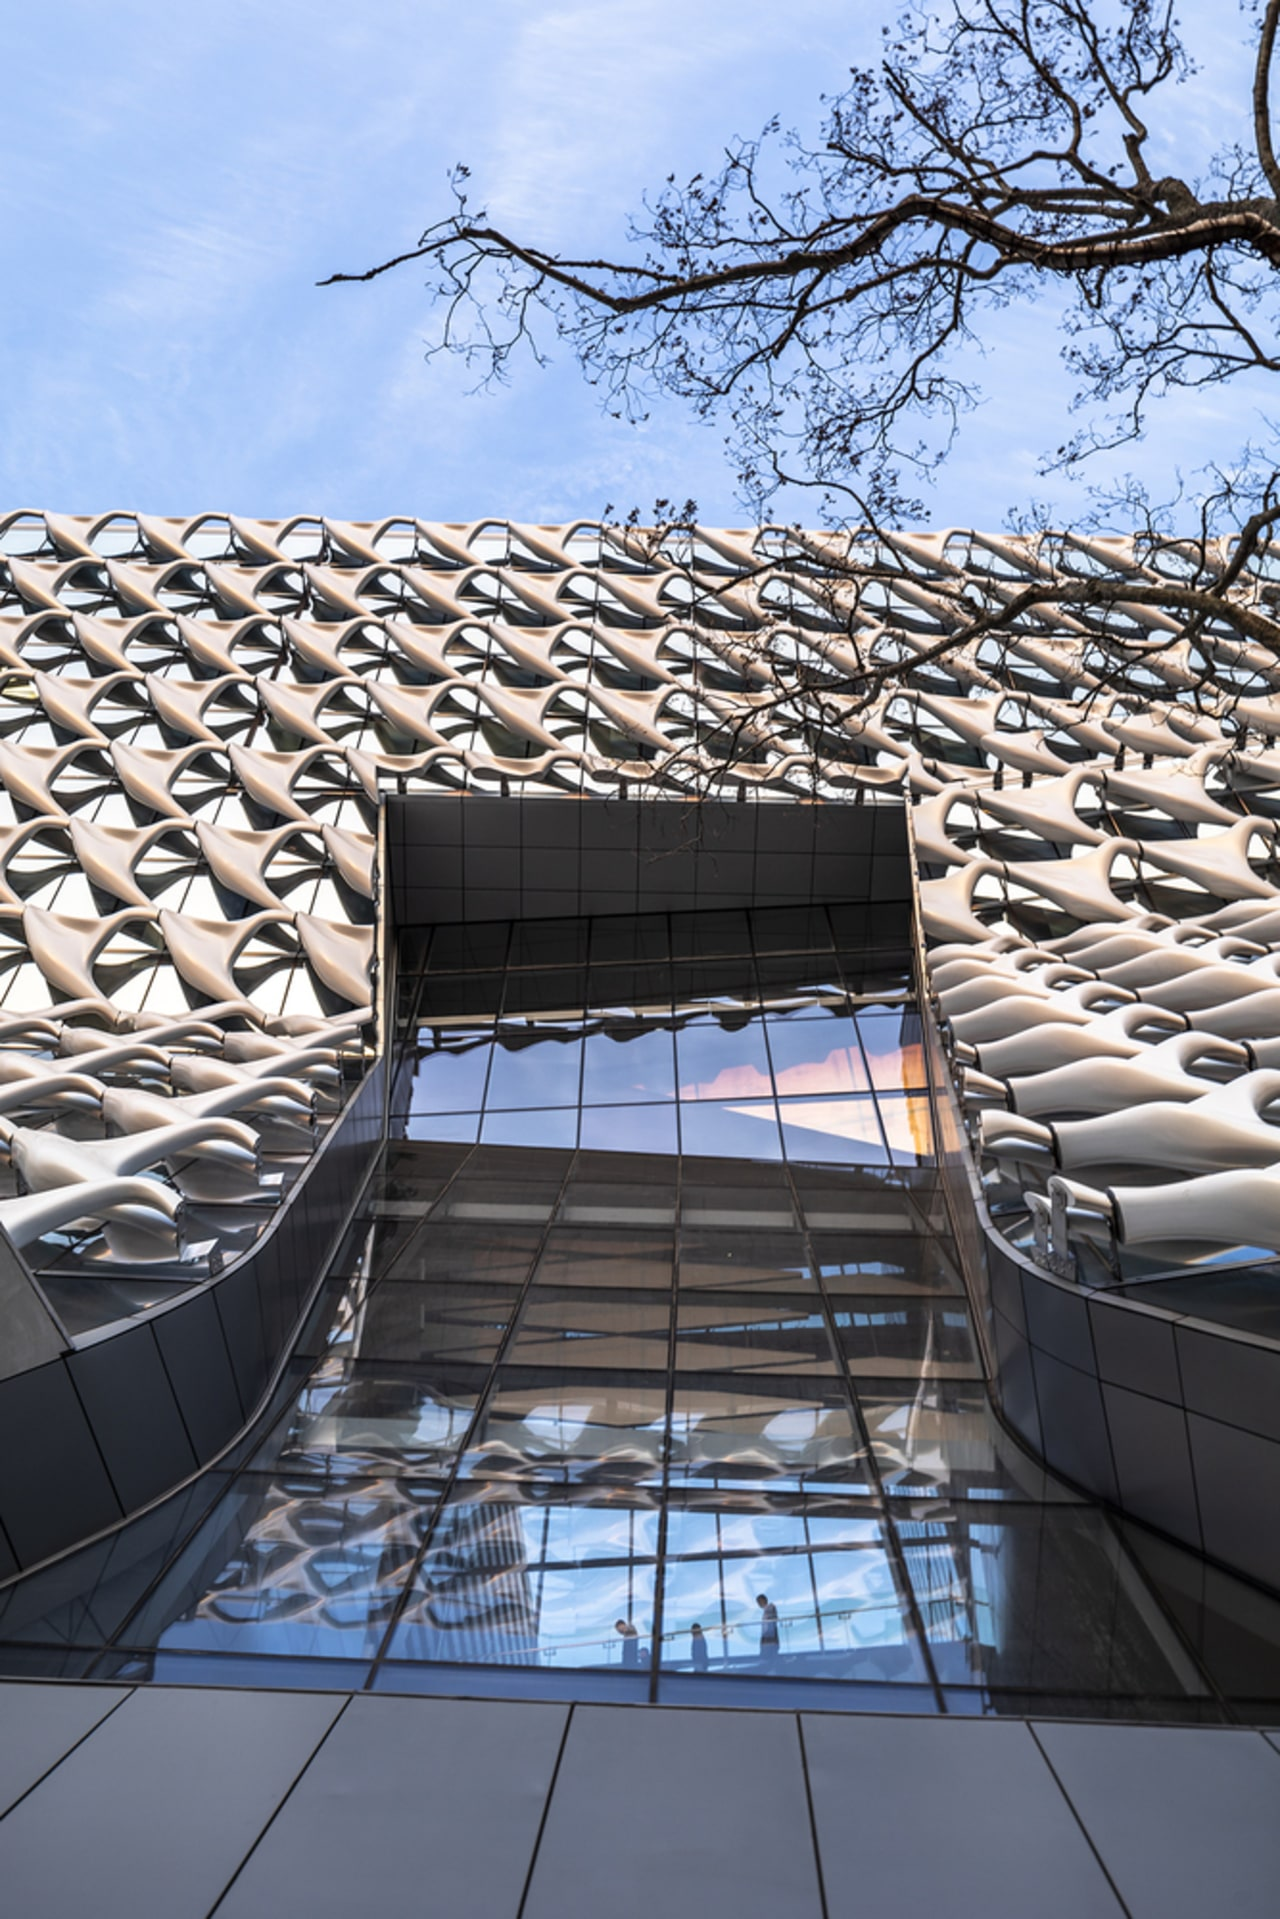 The extrerior was inspired by Kolon's severe-weather layered architecture, building, daylighting, daytime, facade, reflection, roof, sky, structure, black, teal